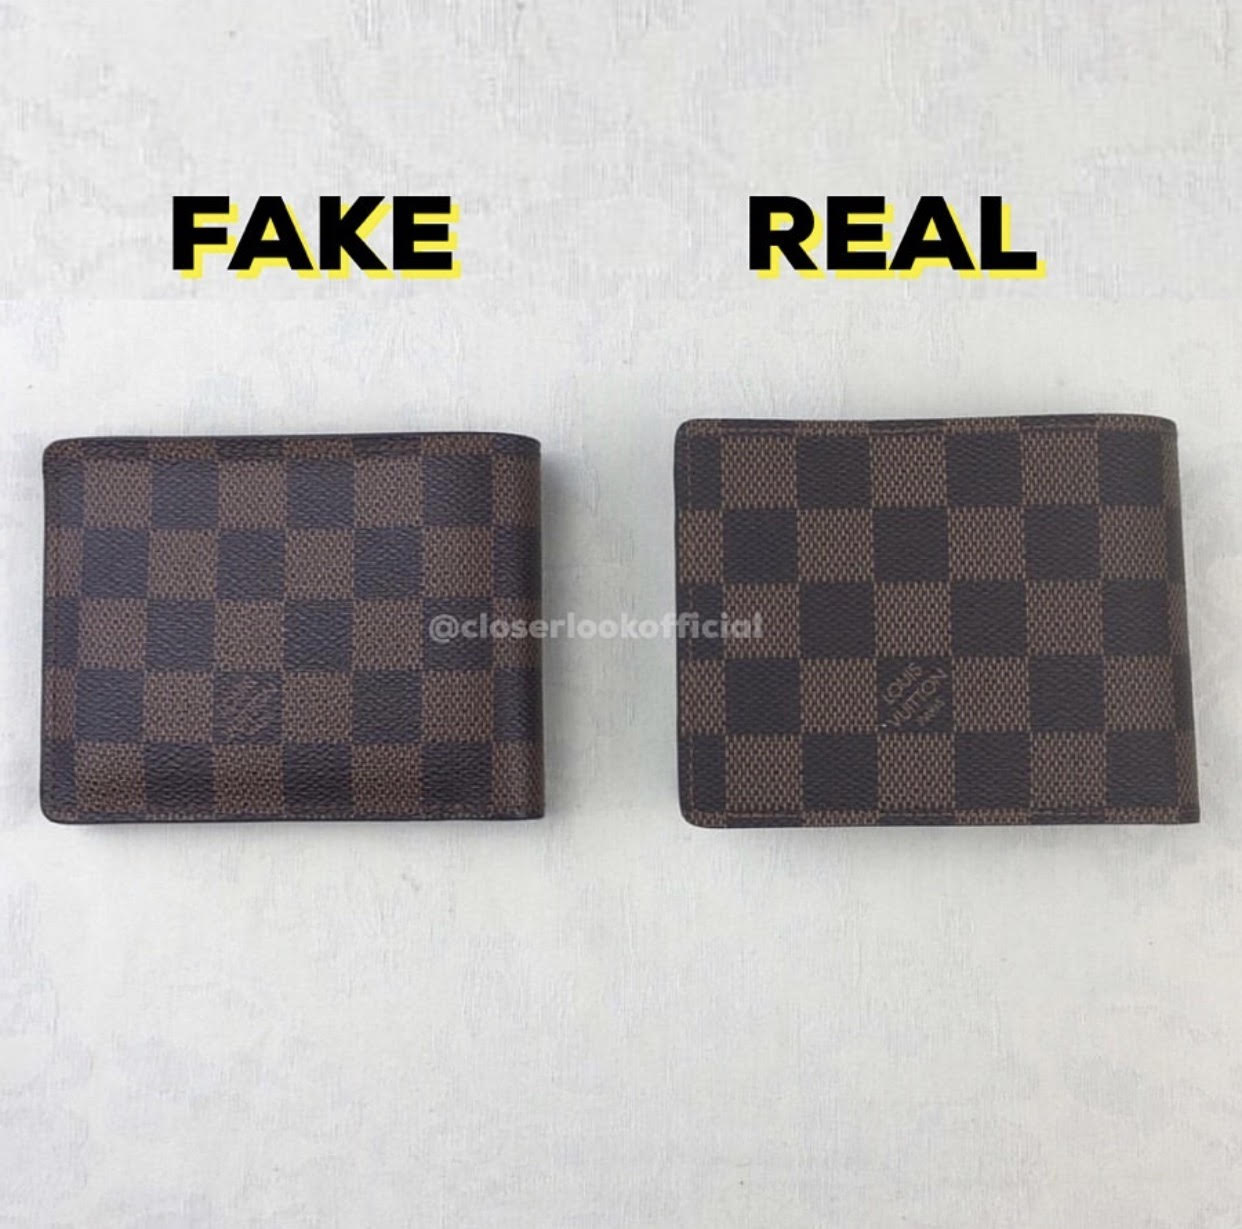 ff9a59869740 How To Spot a Fake Louis Vuitton Multiple Wallet - Brands Blogger